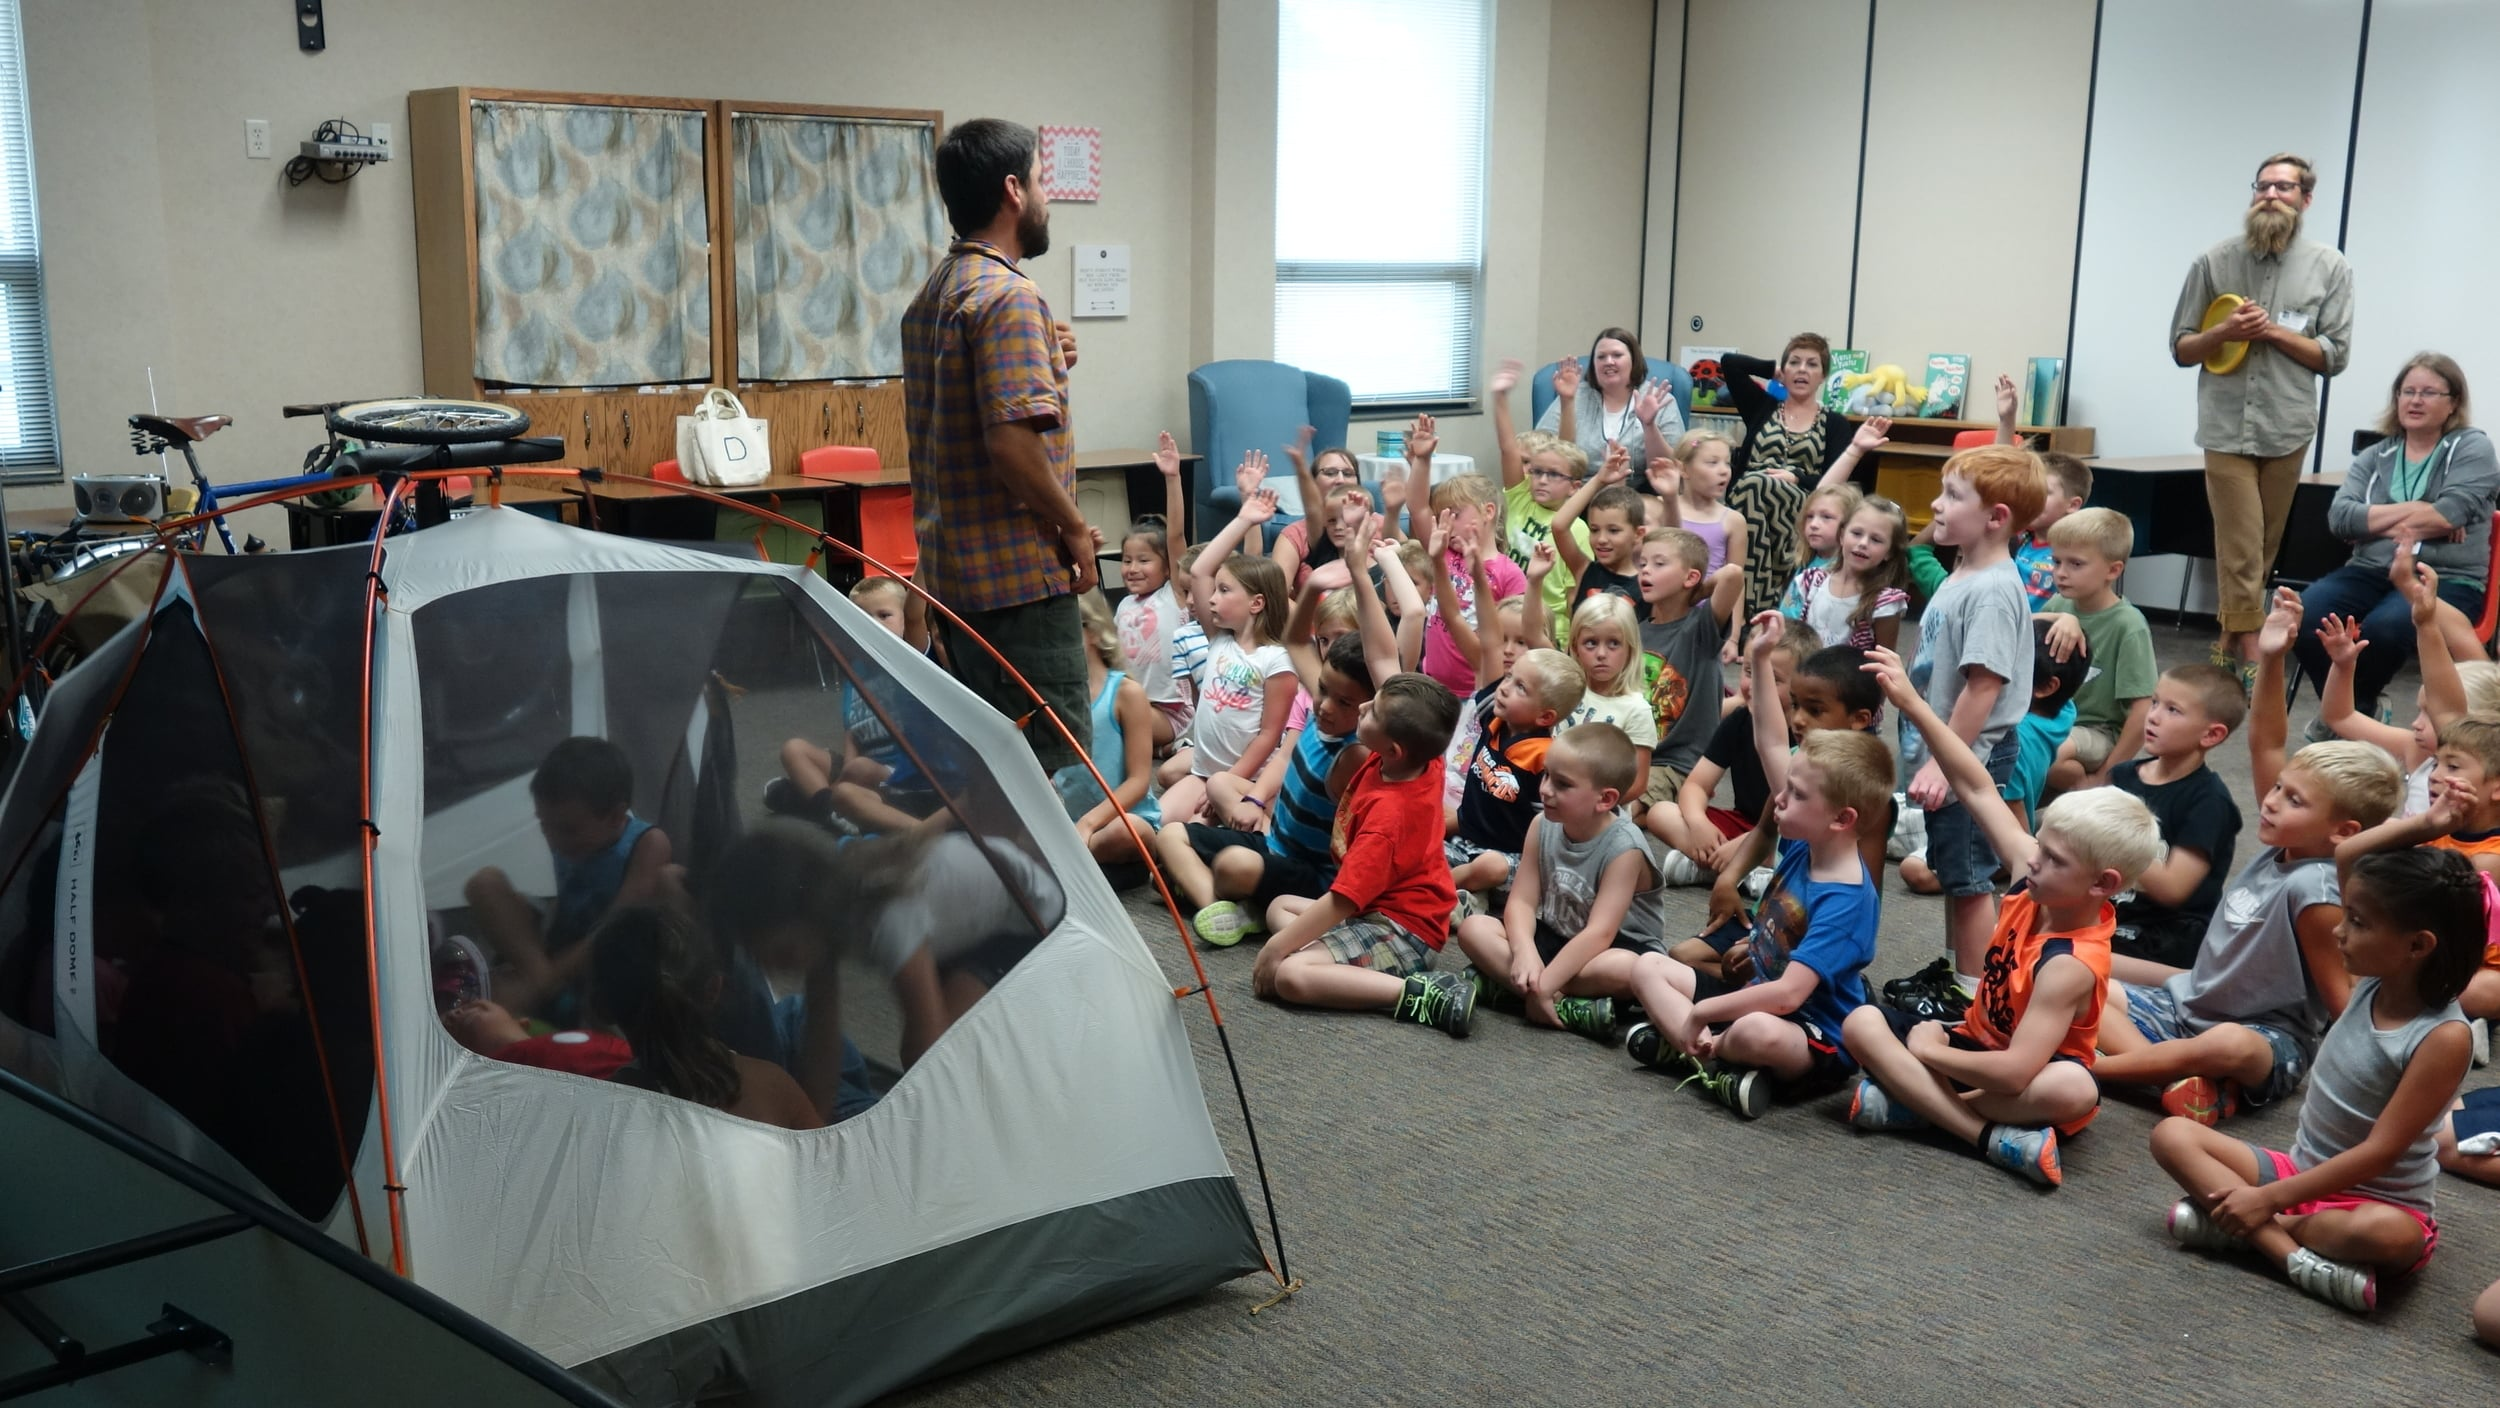 We strive to keep kids engaged during our entire presentation. A contest to see how many kindergartners can fit in our tent does just that.